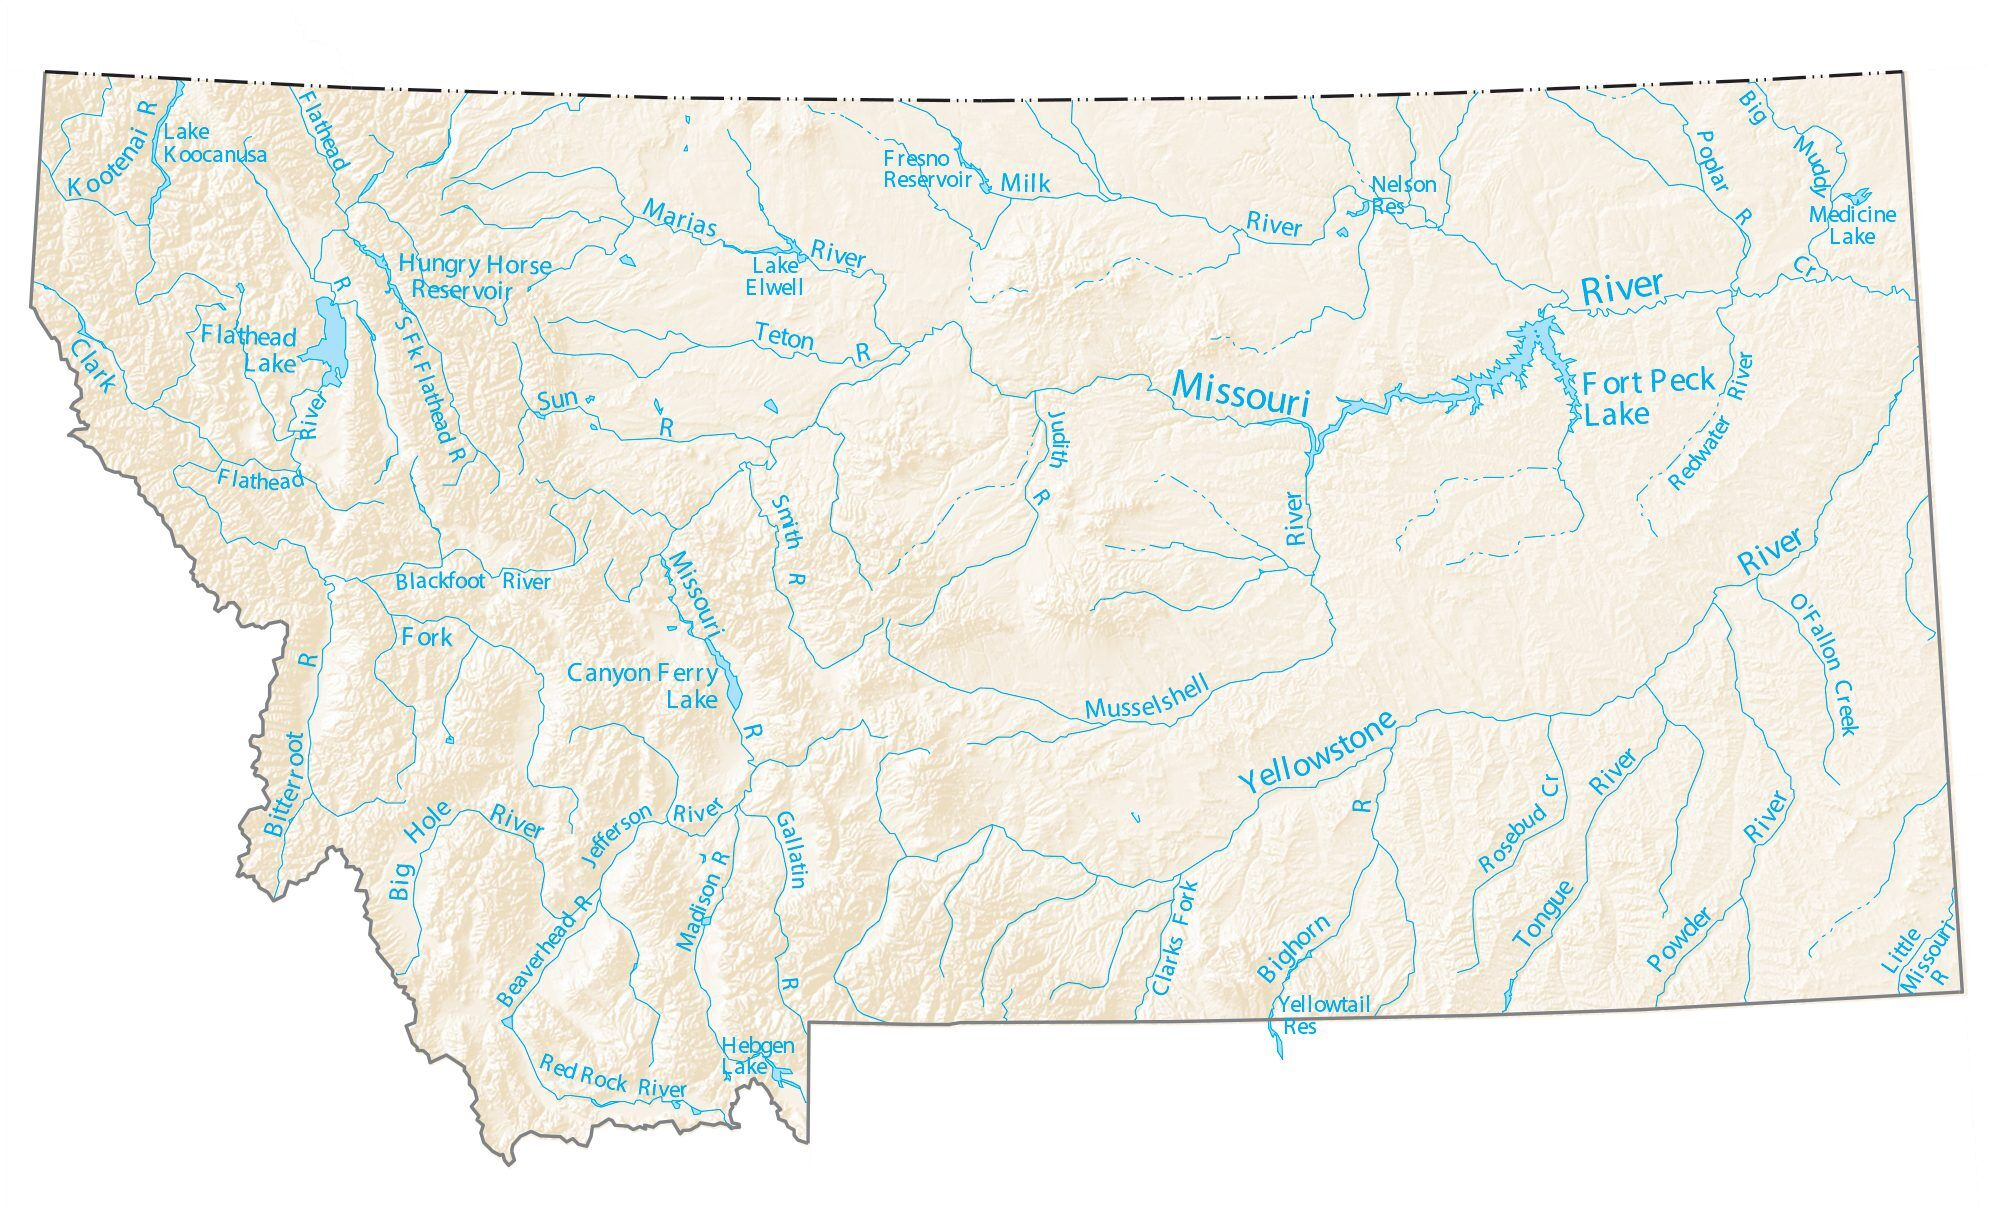 fort peck lake map Montana Lakes And Rivers Map Gis Geography fort peck lake map